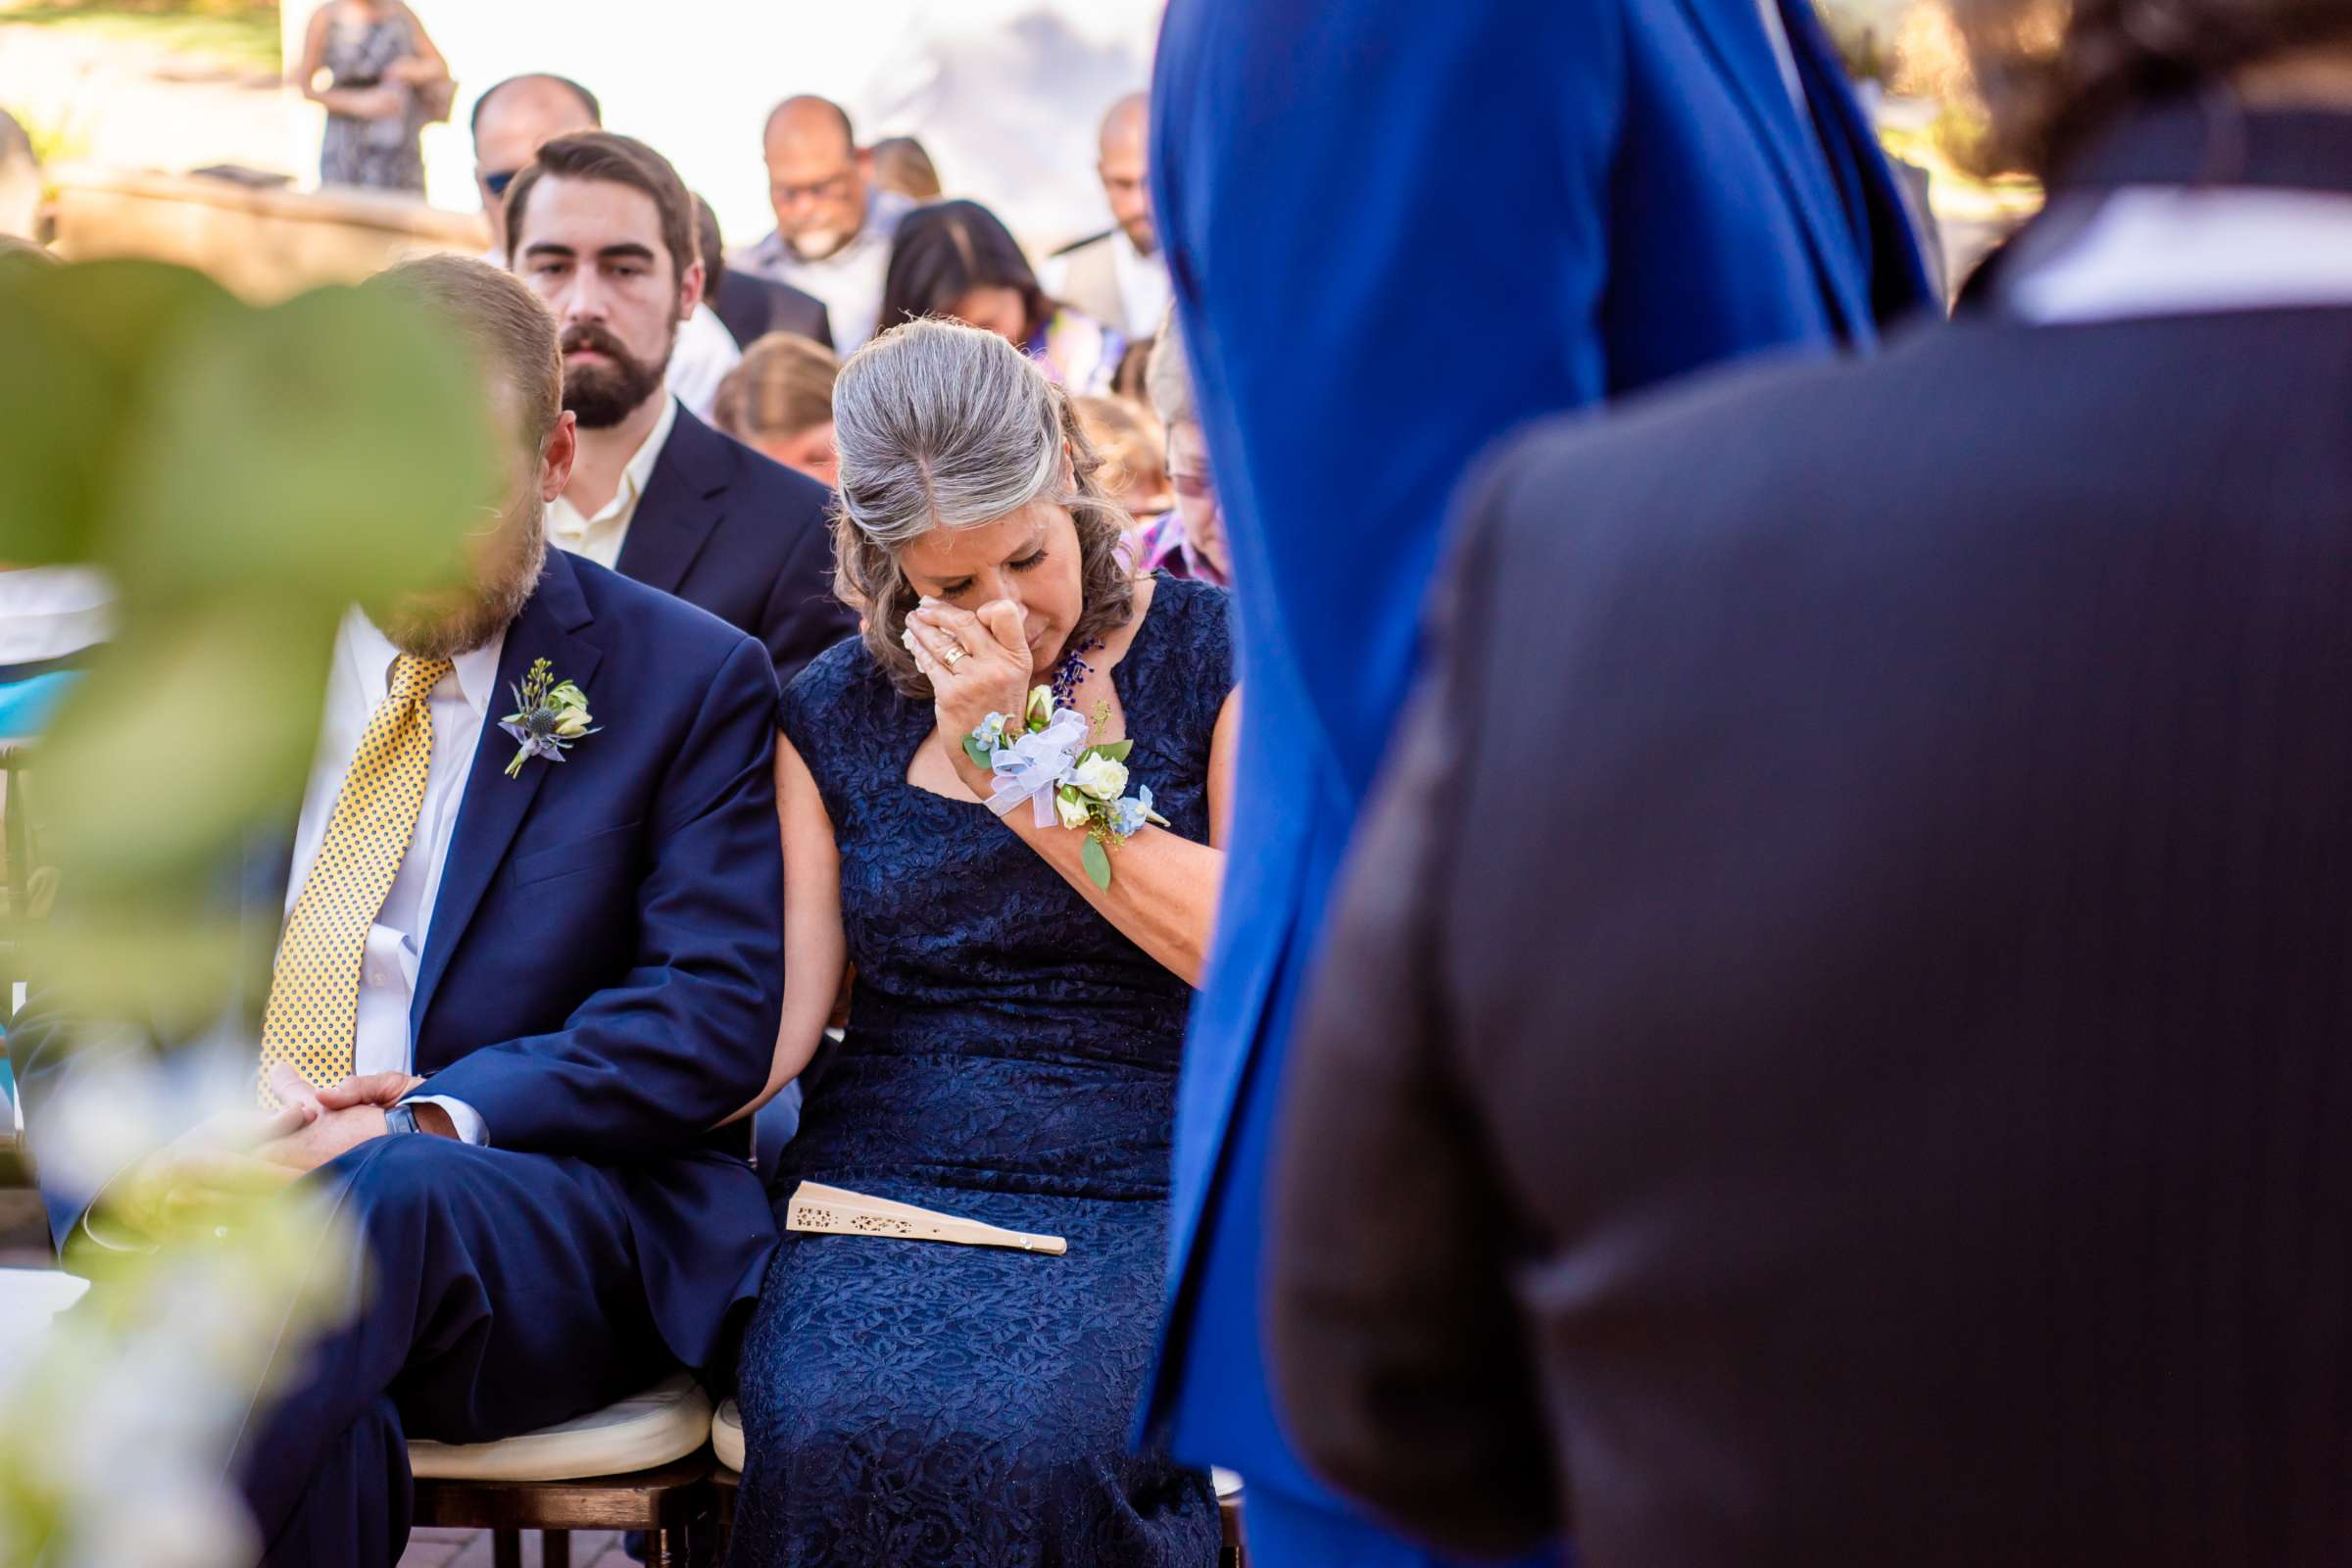 Mt Woodson Castle Wedding coordinated by I Do Weddings, Aya and Jared Wedding Photo #486946 by True Photography